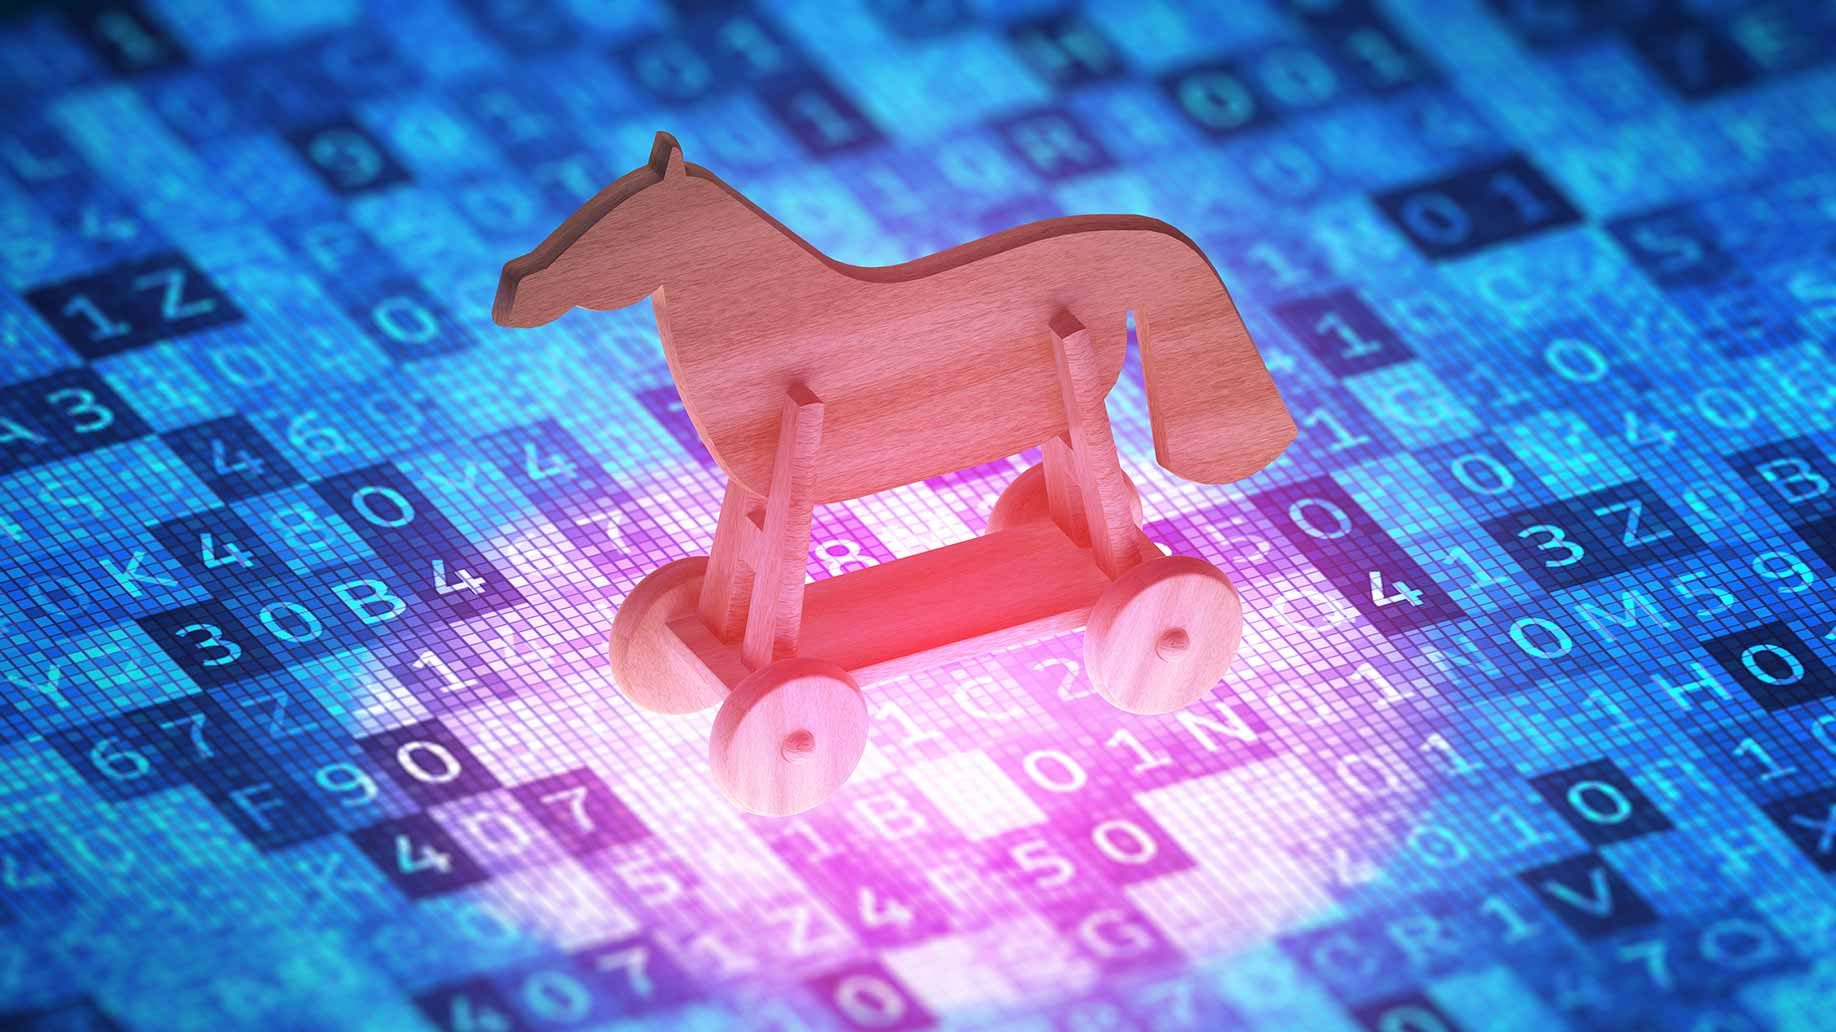 trojan horse on top of computer code cyber security concept